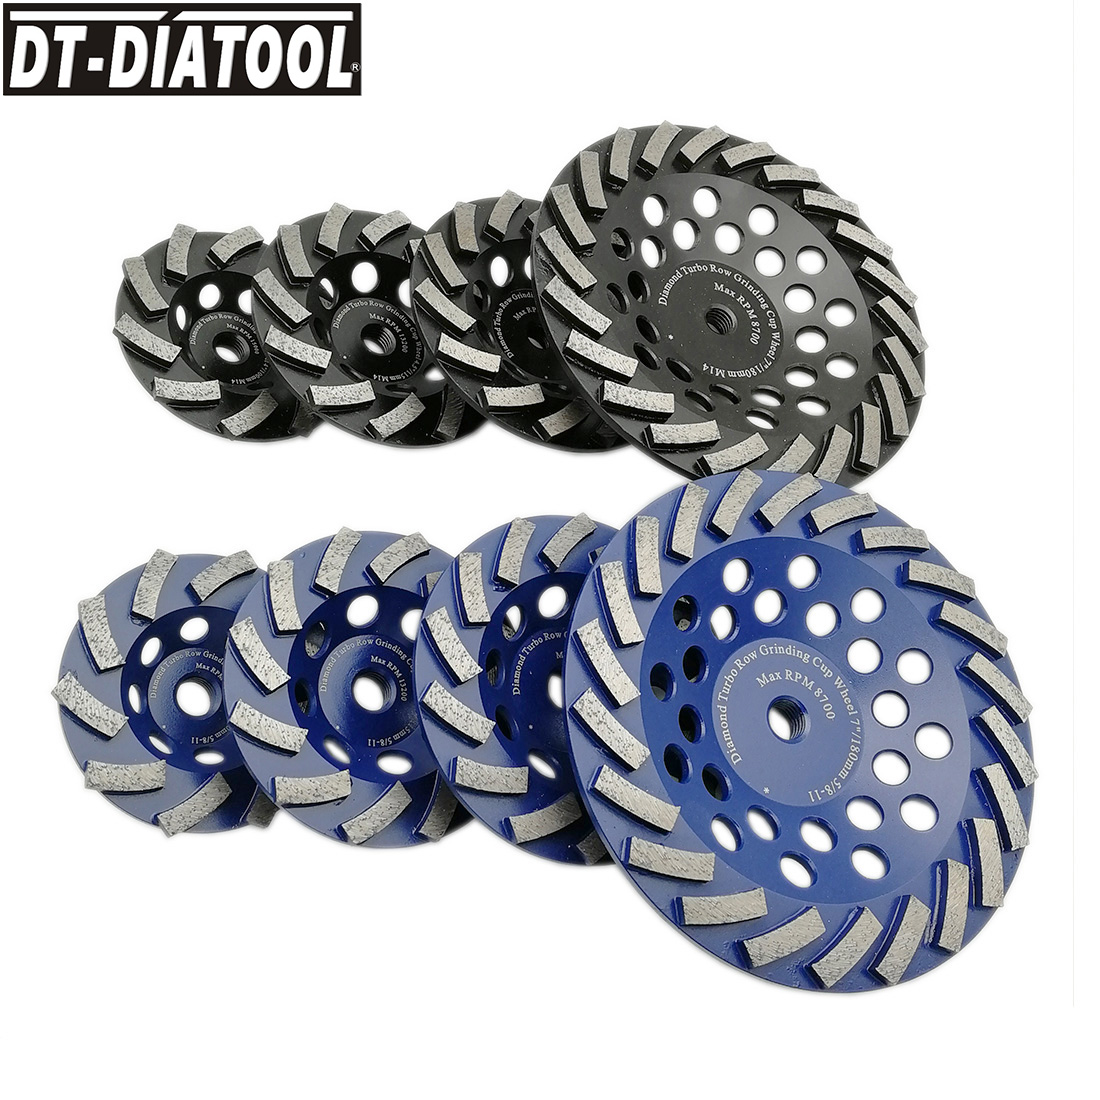 DT-DIATOOL 1pc Dia 100/115/125/180mm Diamond Segmented Turbo Cup Grinding Wheel For Concrete Granite With M14 Or 5/8-11 Thread